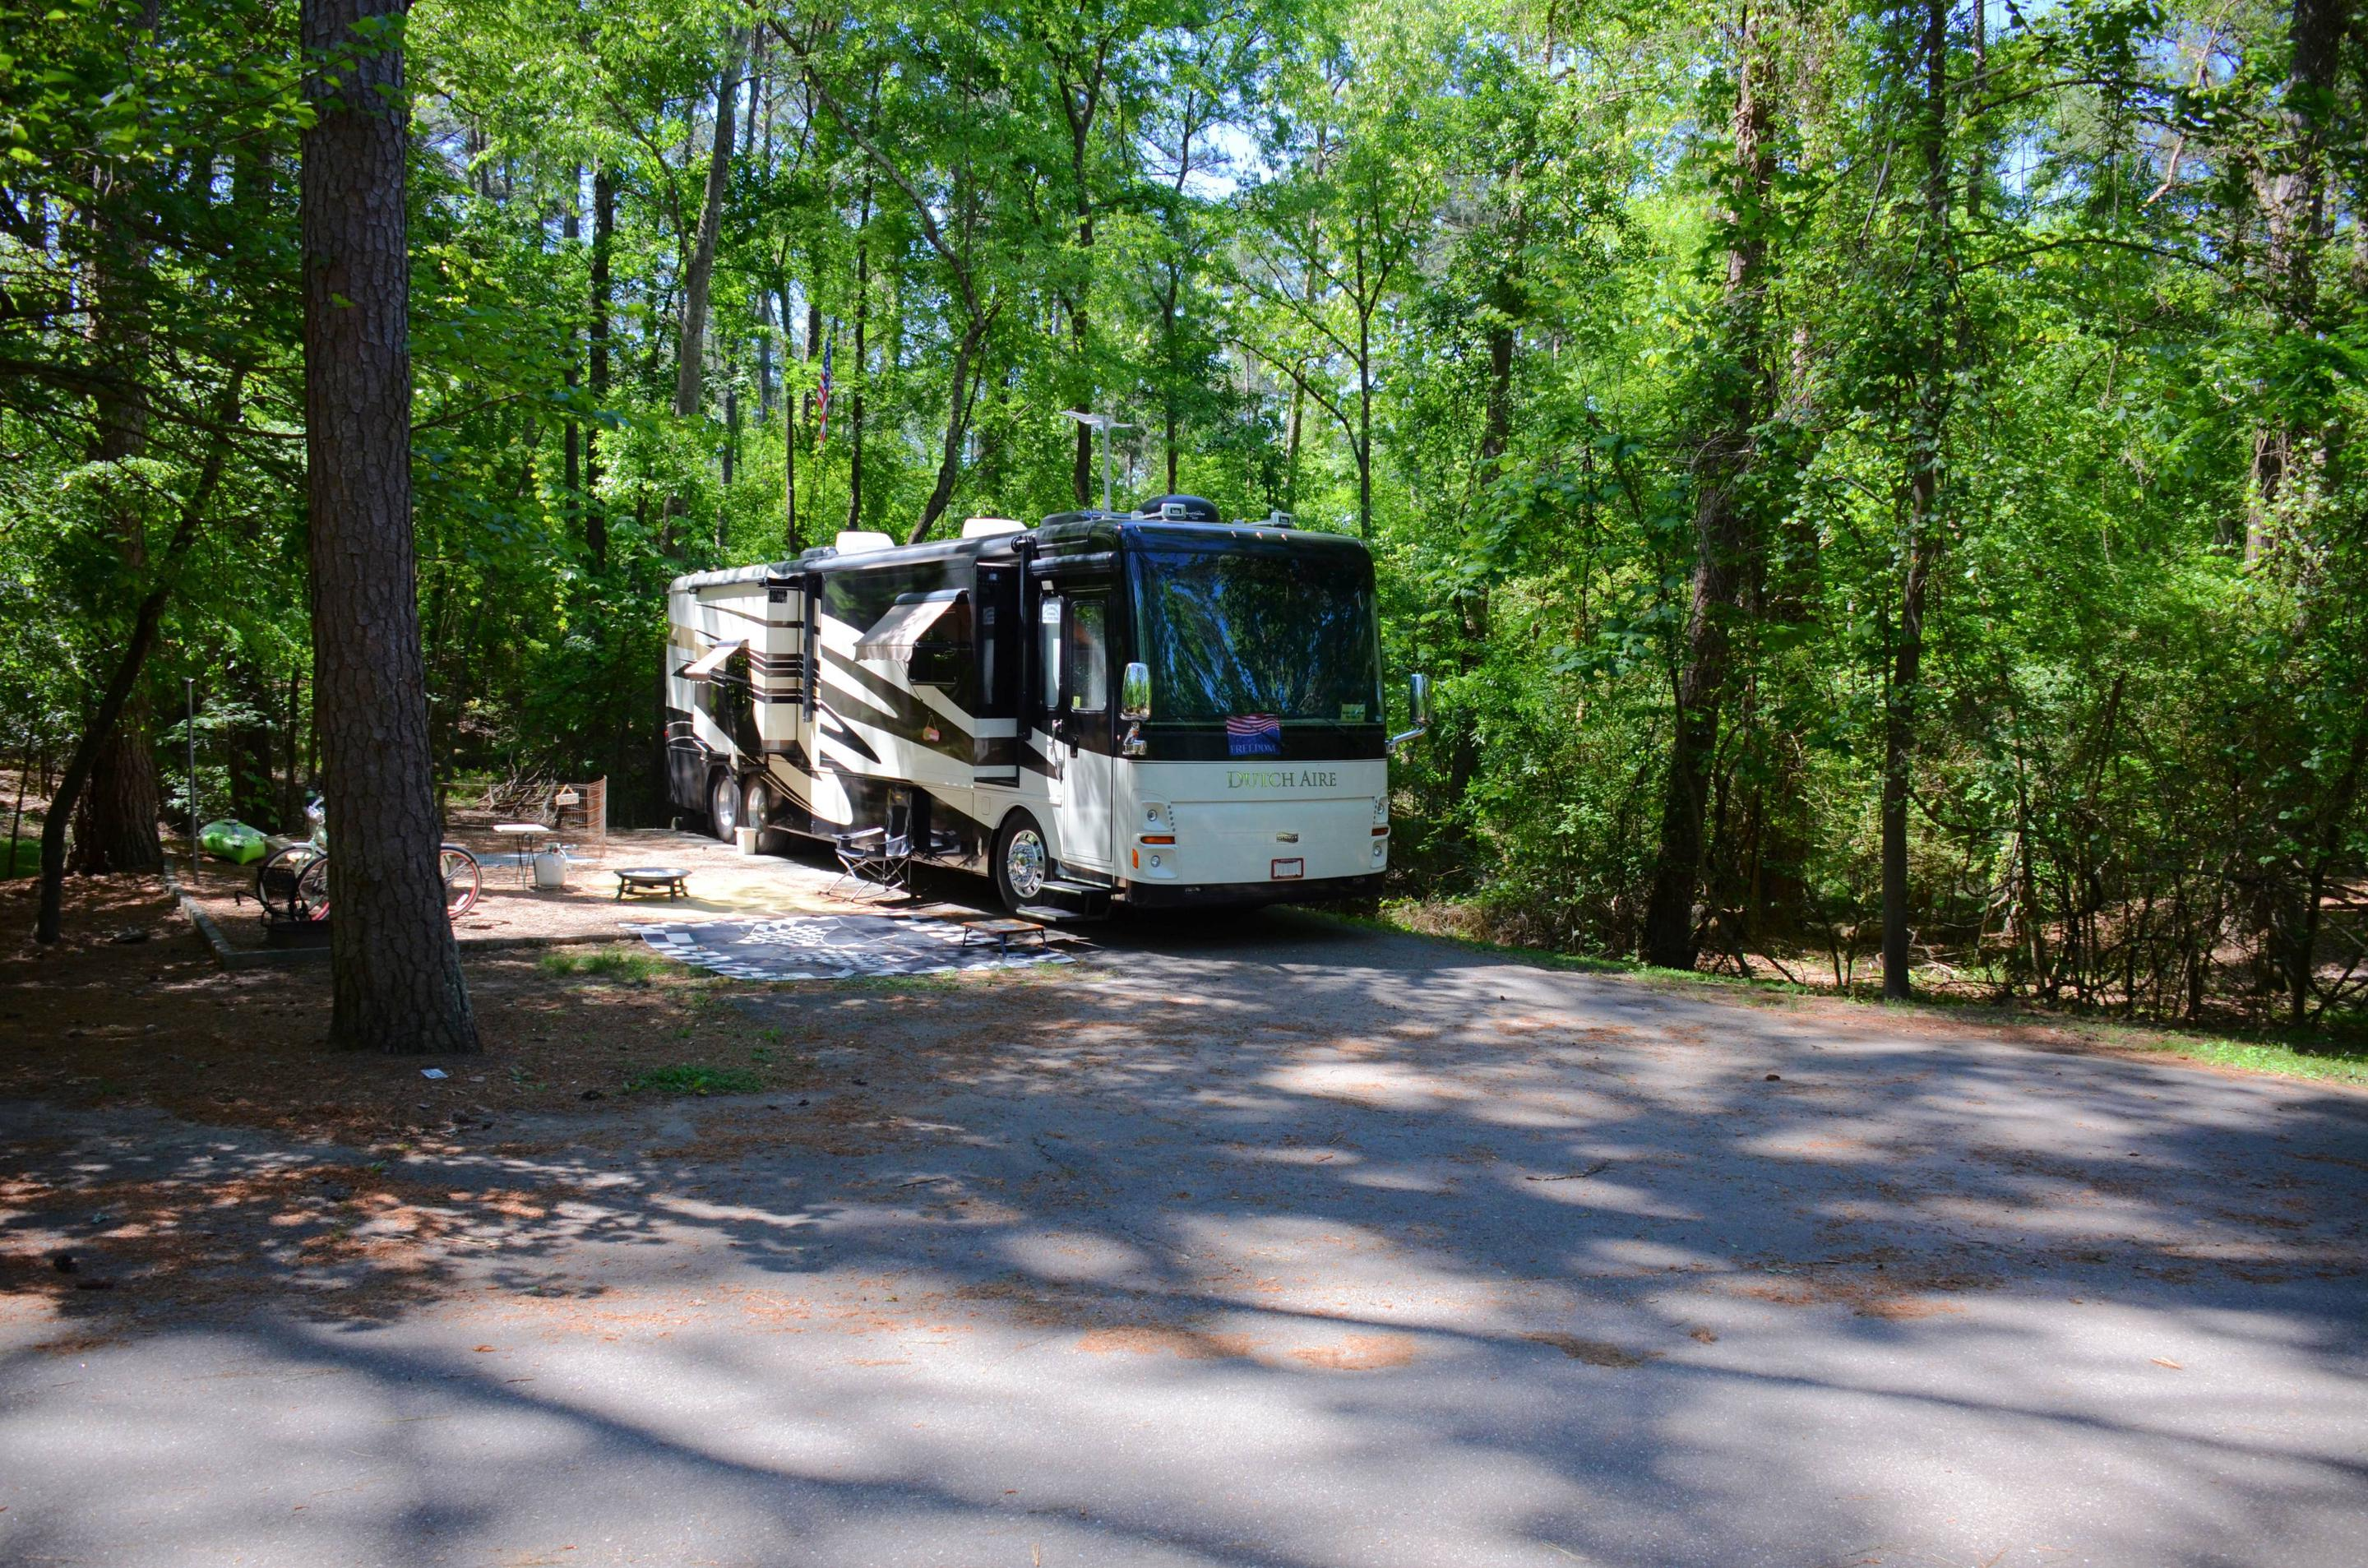 Driveway entrance/slope, awning-side clearance.McKinney Campground, campsite 72.